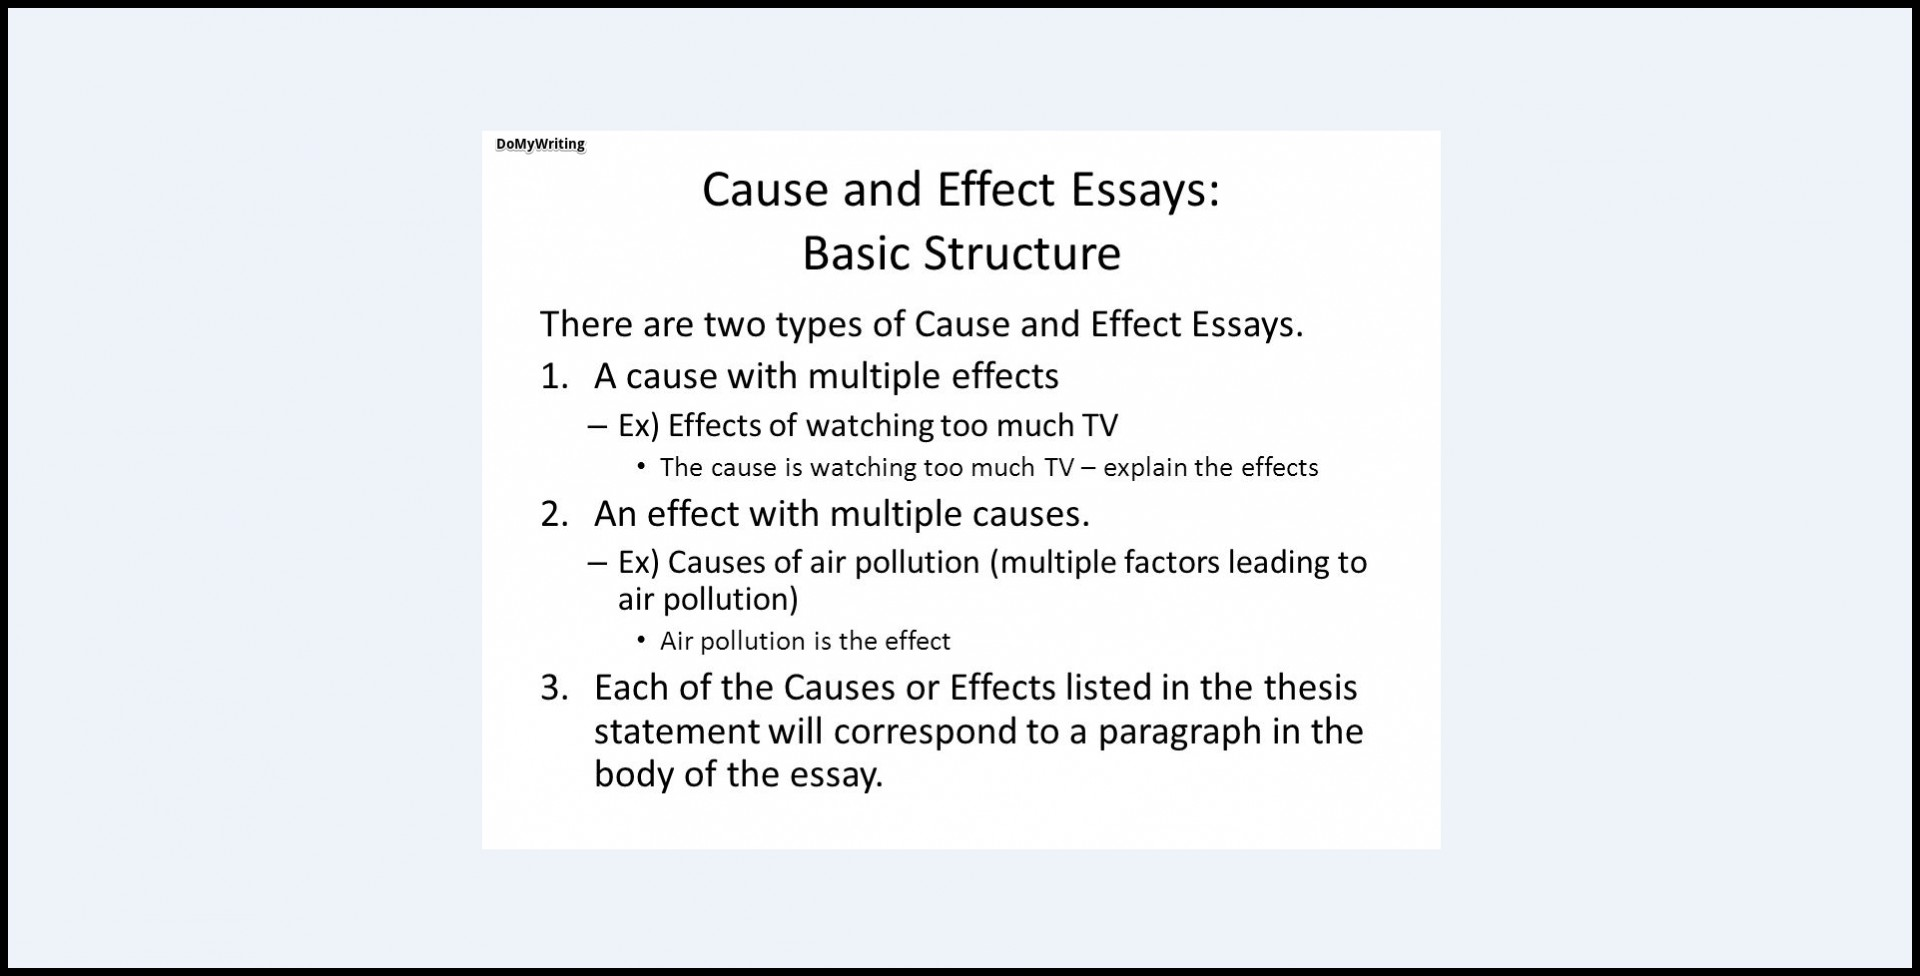 013 Cause And Effect Essay Topics Structure Dreaded Ielts On Smoking Weed Thesis Generator 1920